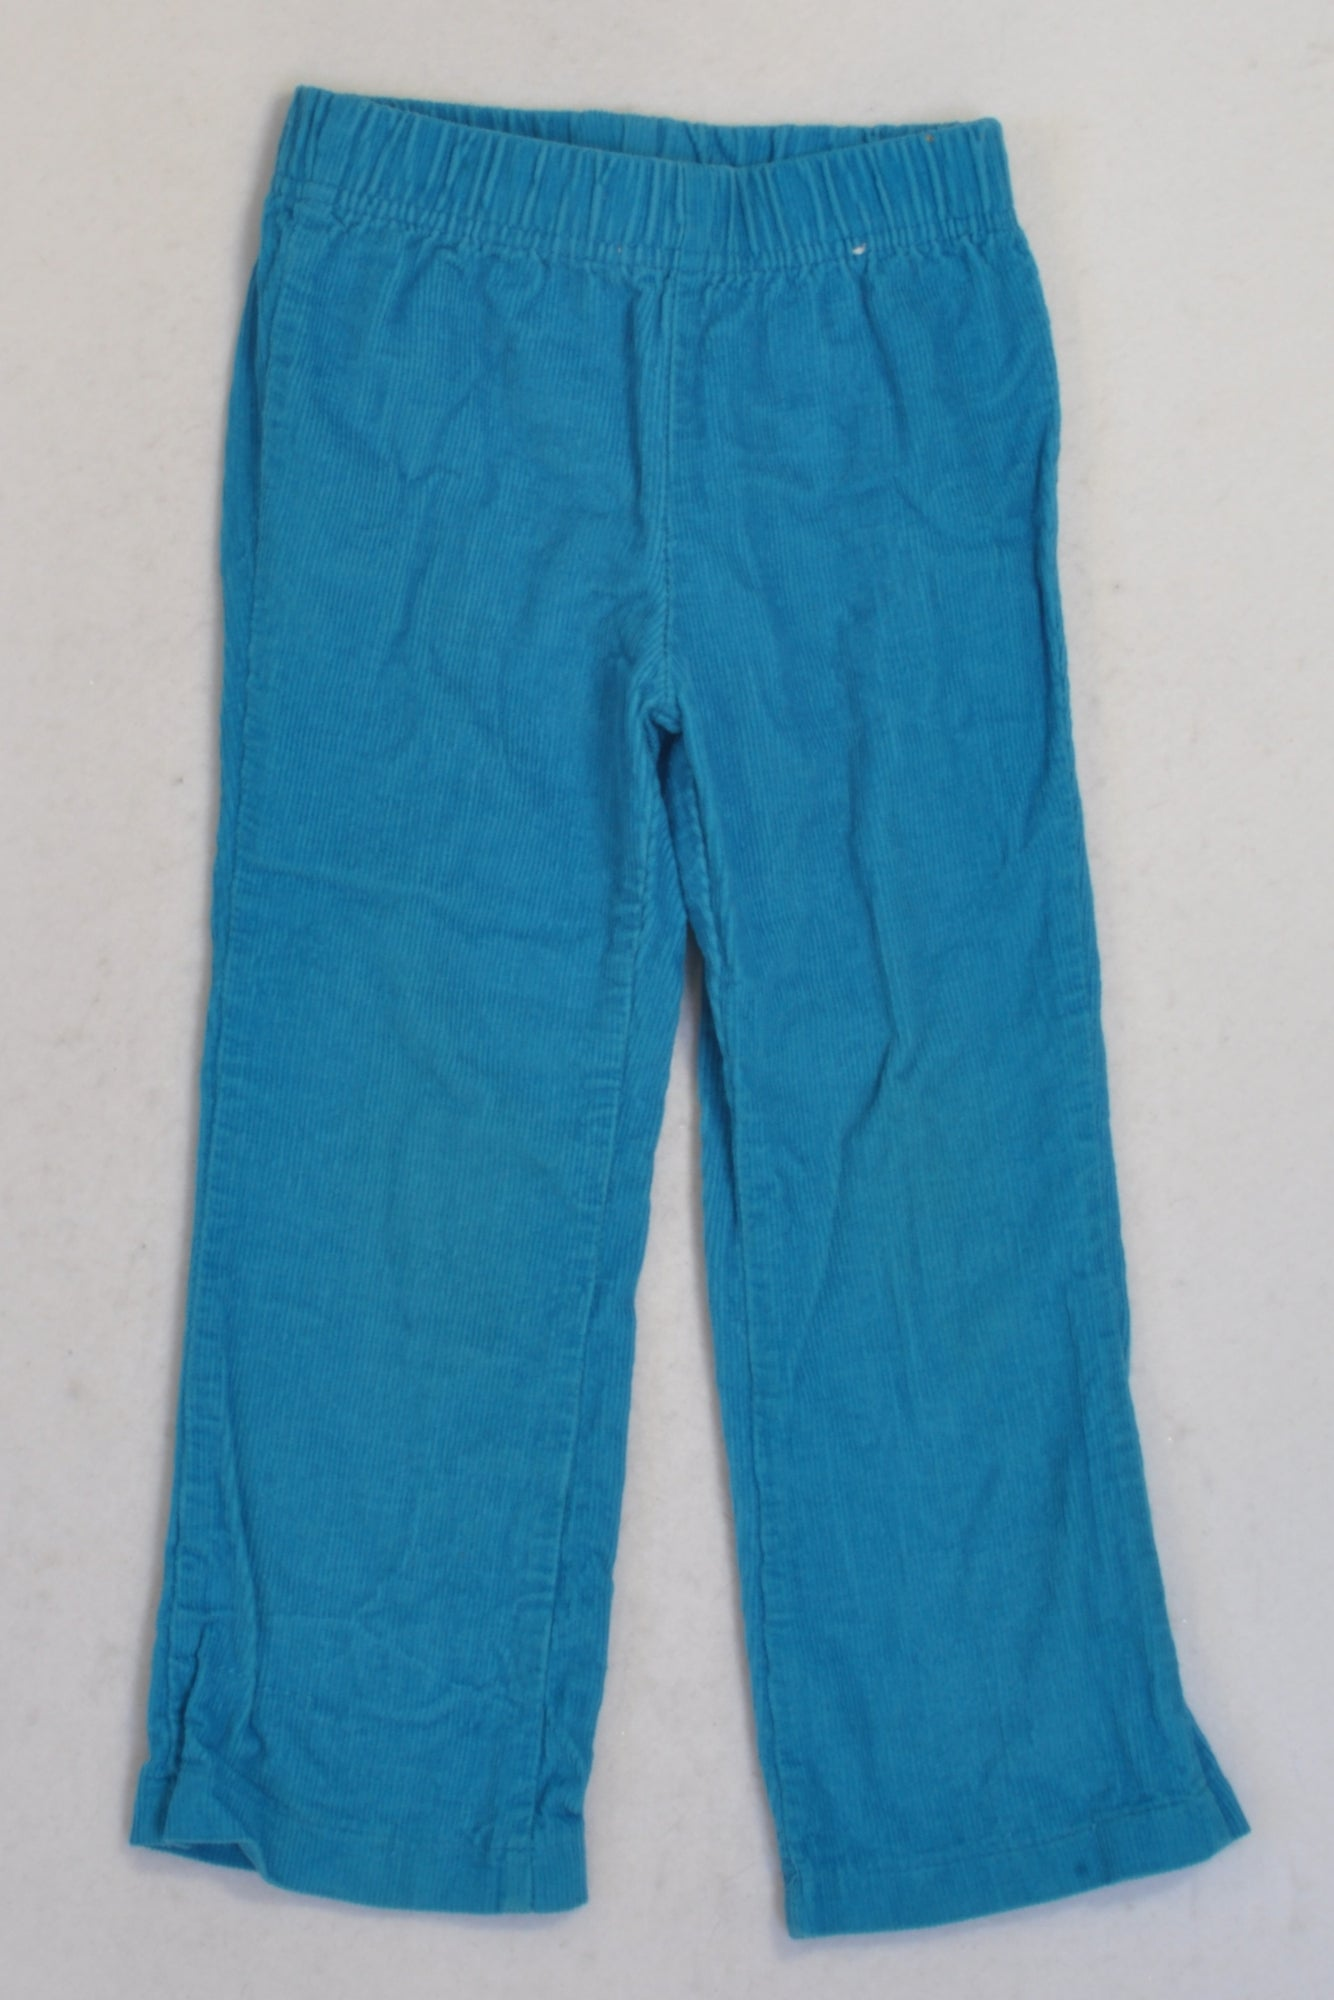 Qtee Bright Blue Corduroy  Pants Girls 2-3 years